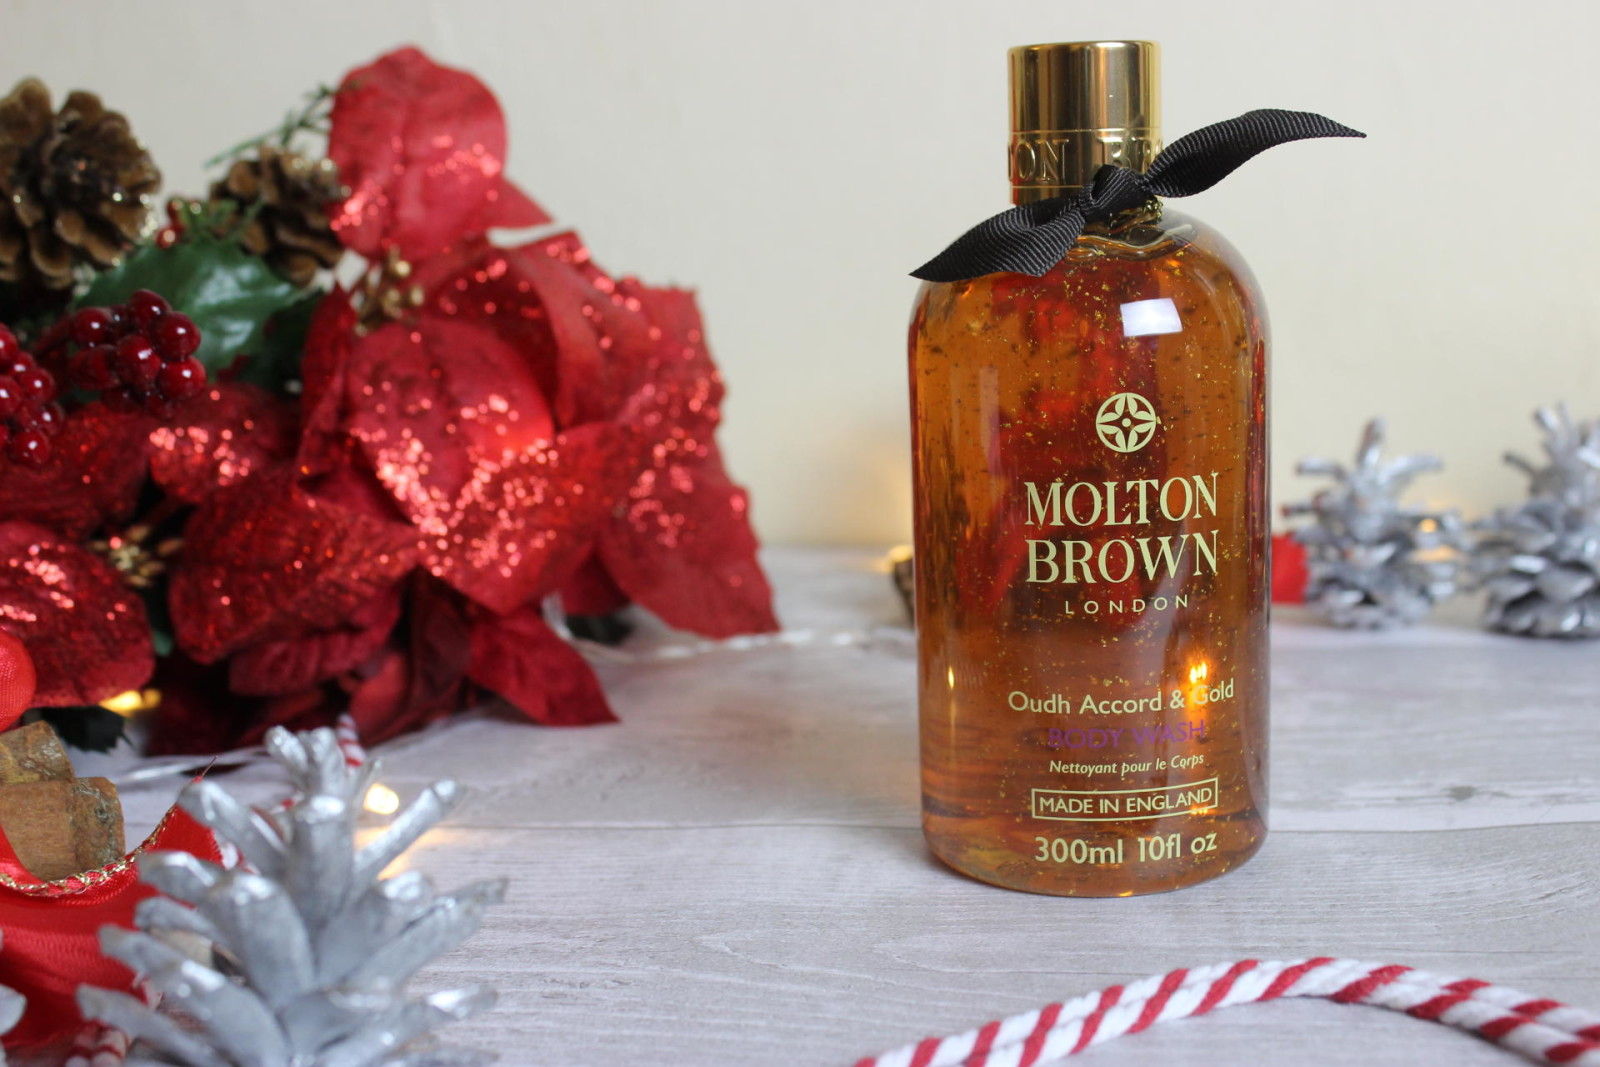 Molton Brown Oudh Accord and Gold bath and shower gel